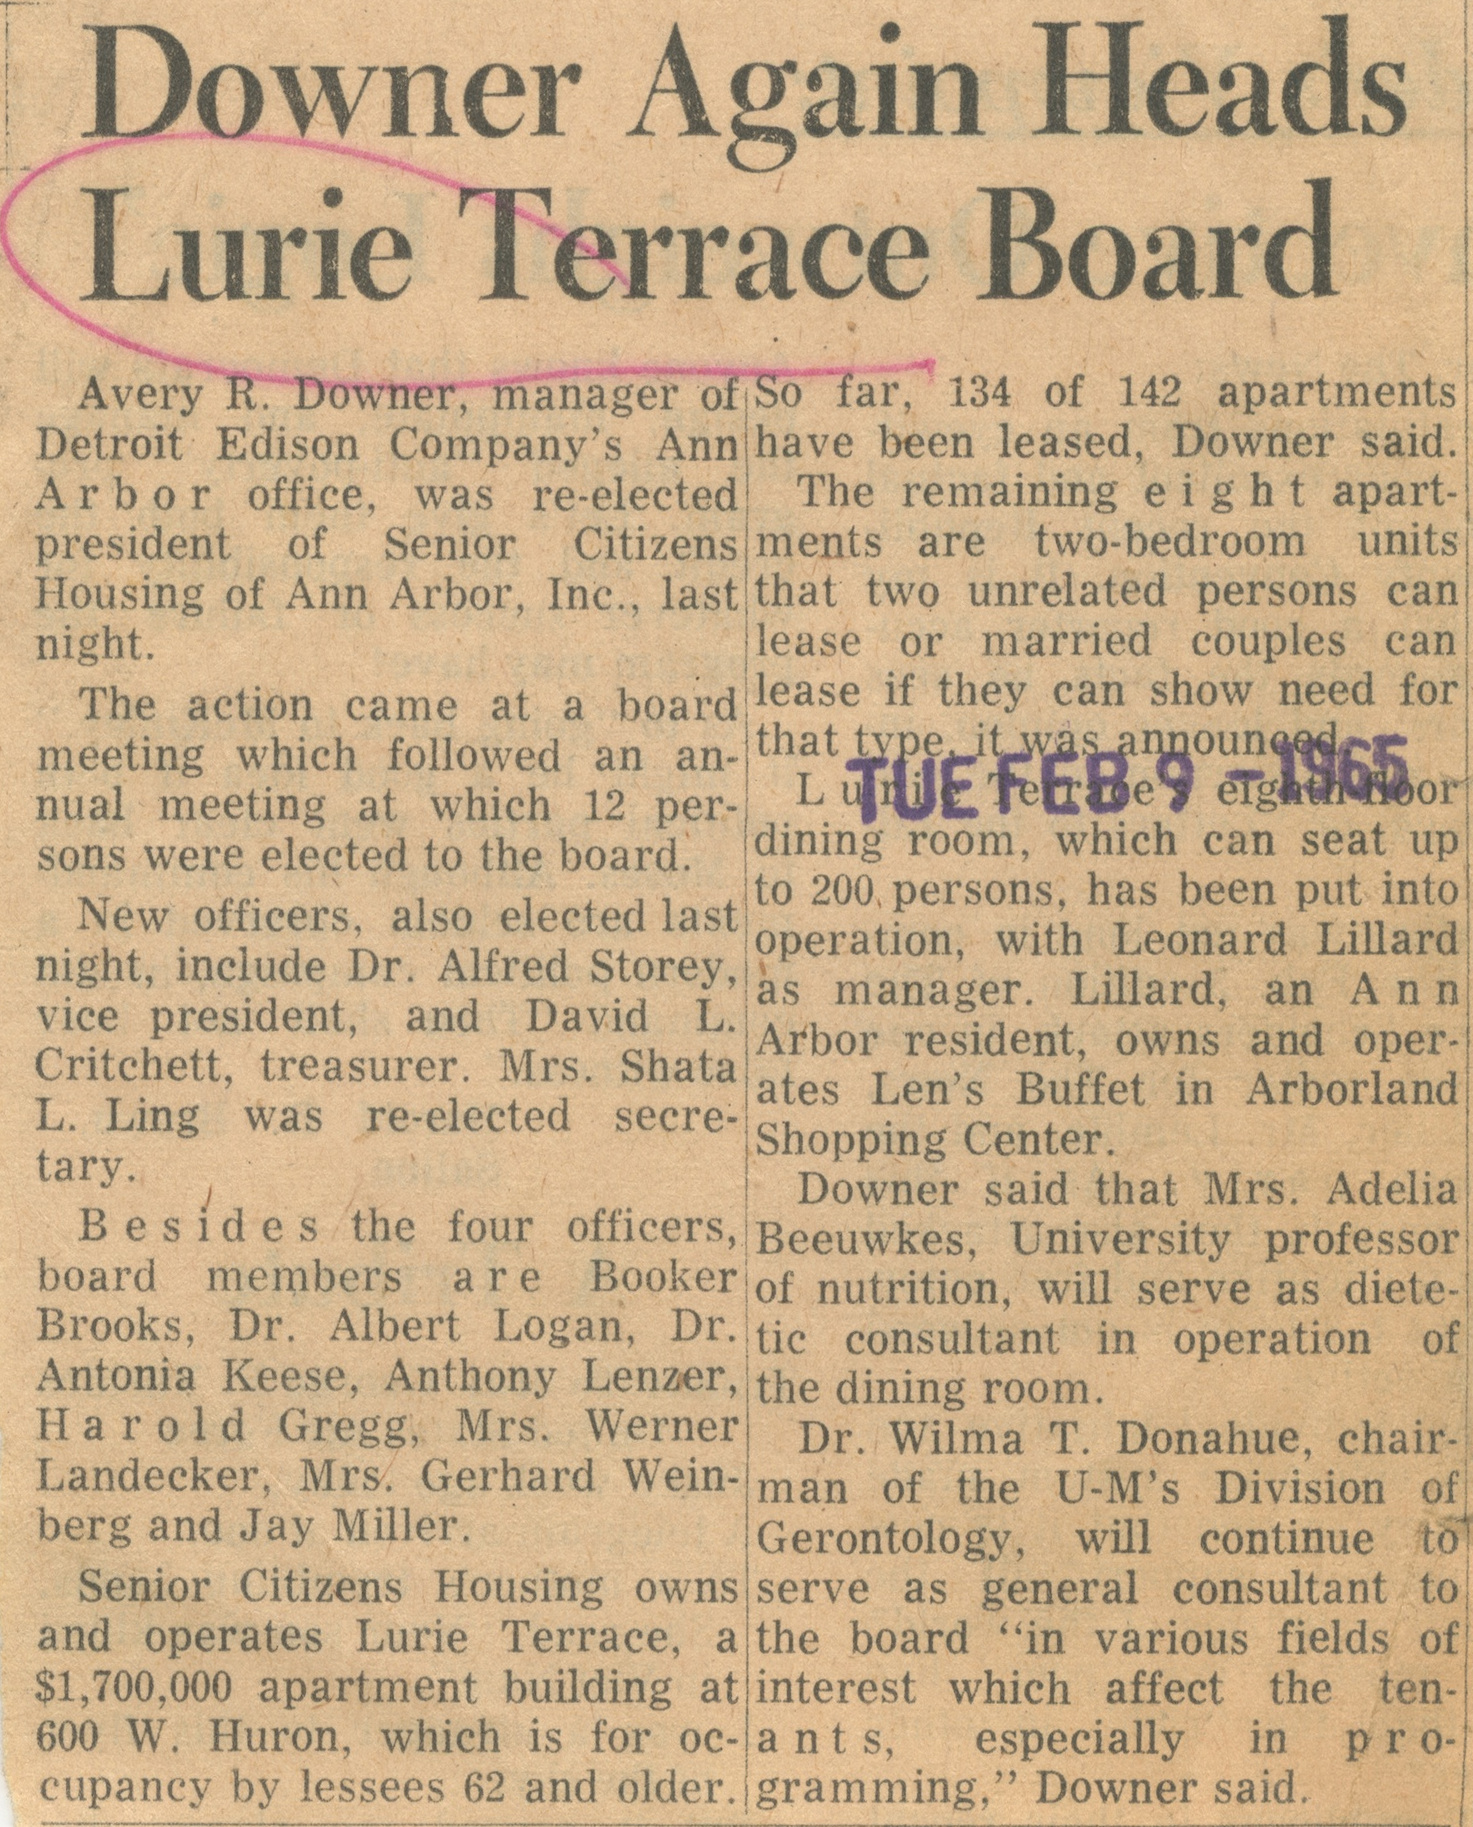 Downer Again Heads Lurie Terrace Board image